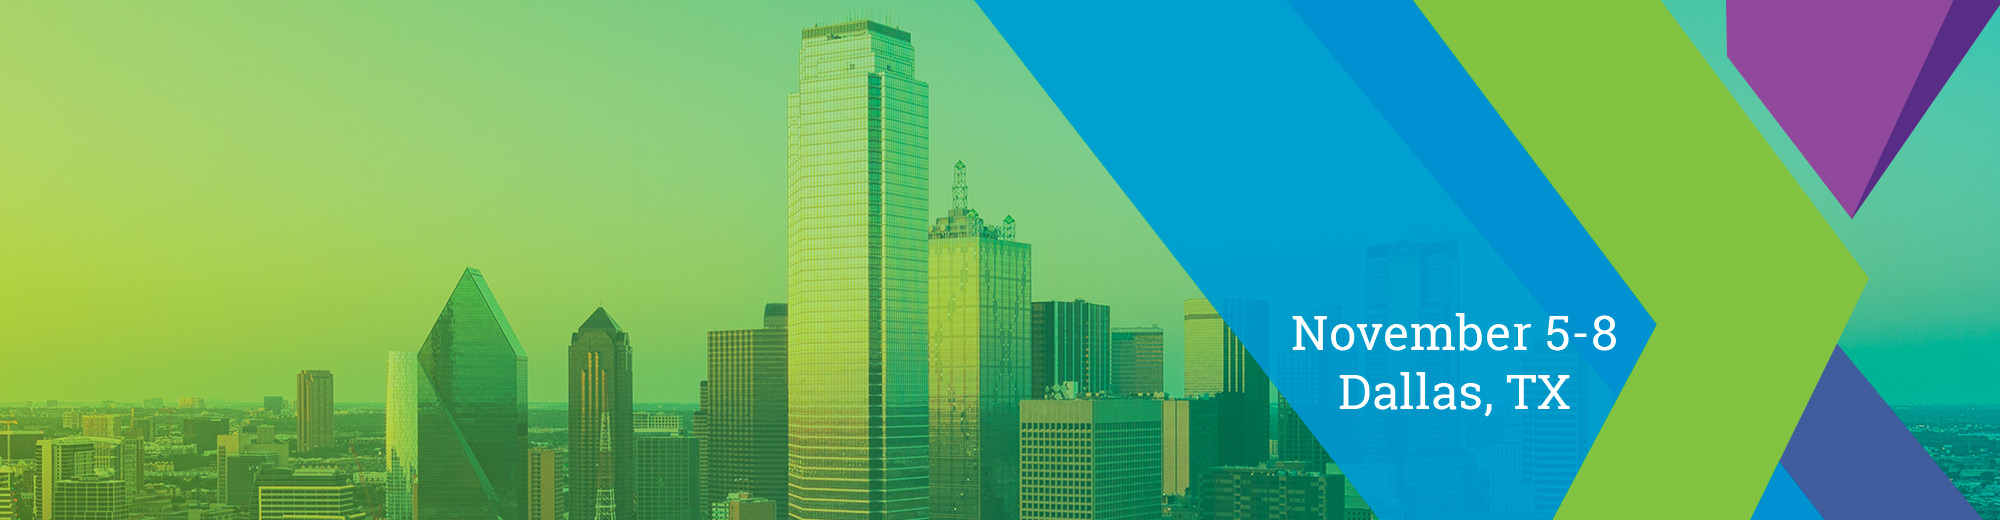 Deltek Insight 2018 - Dallas, TX